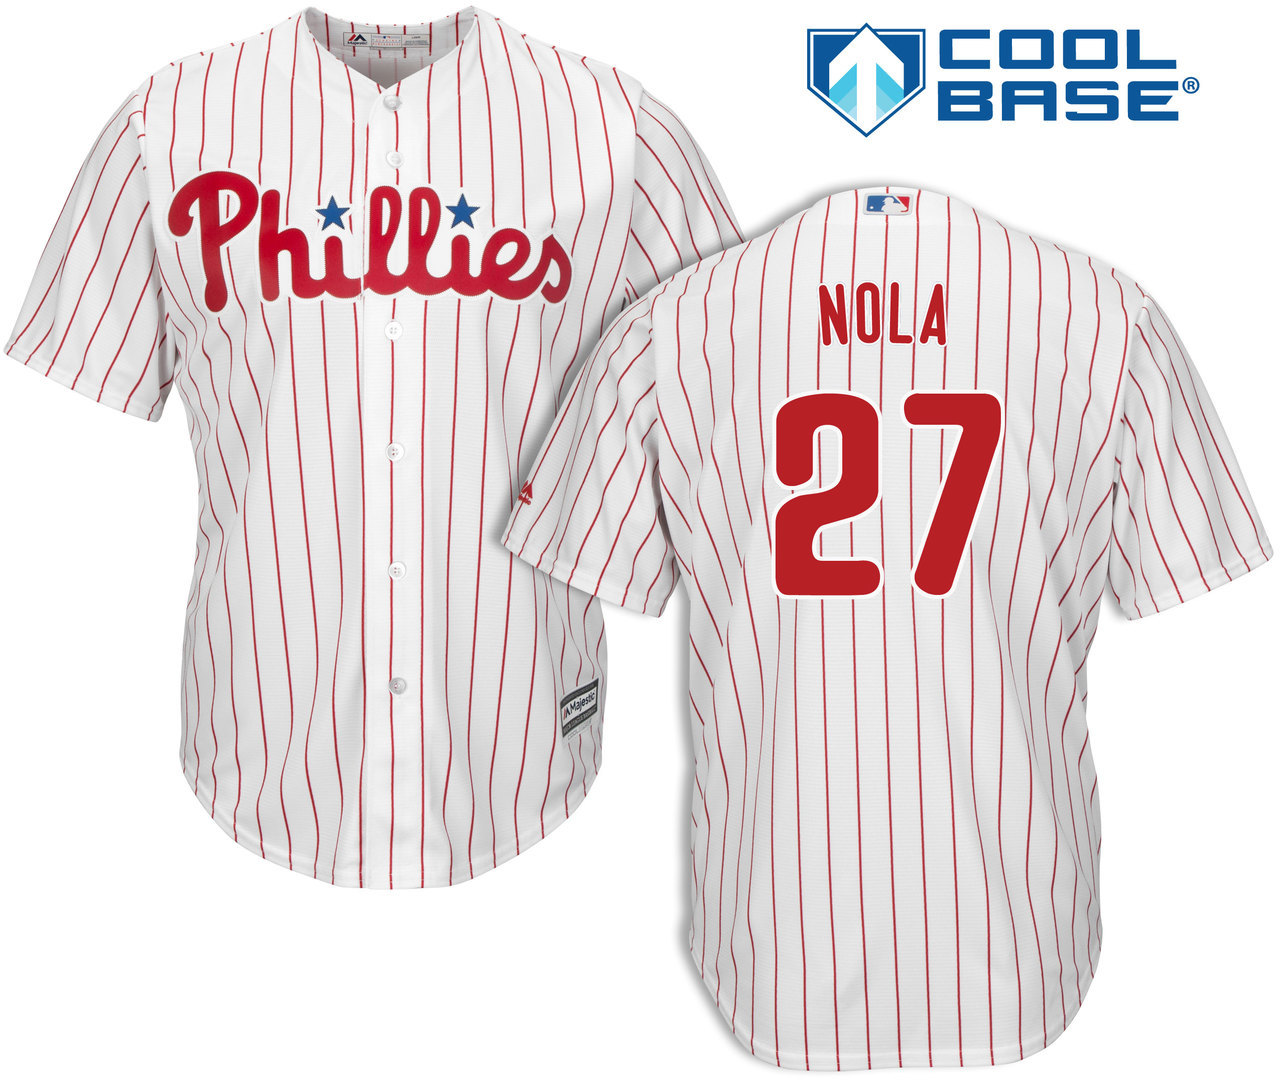 Youth Philadelphia Phillies #27 Aaron Nola White Cool Base MLB Jersey